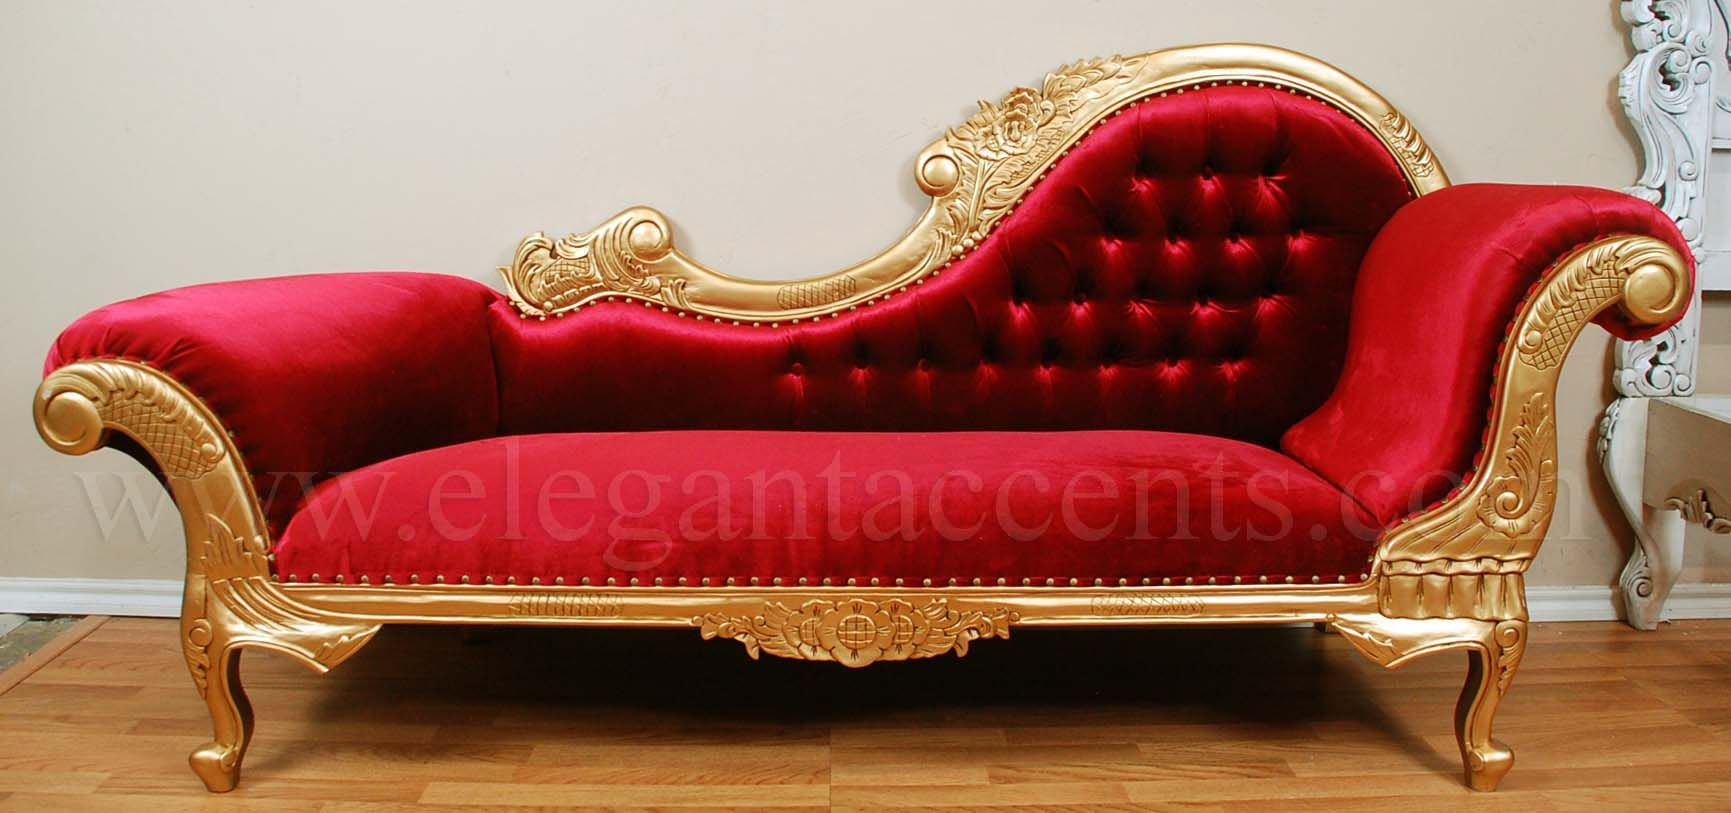 Victorian chaise lounge chaise lounge pinterest for Baroque chaise lounge sofa